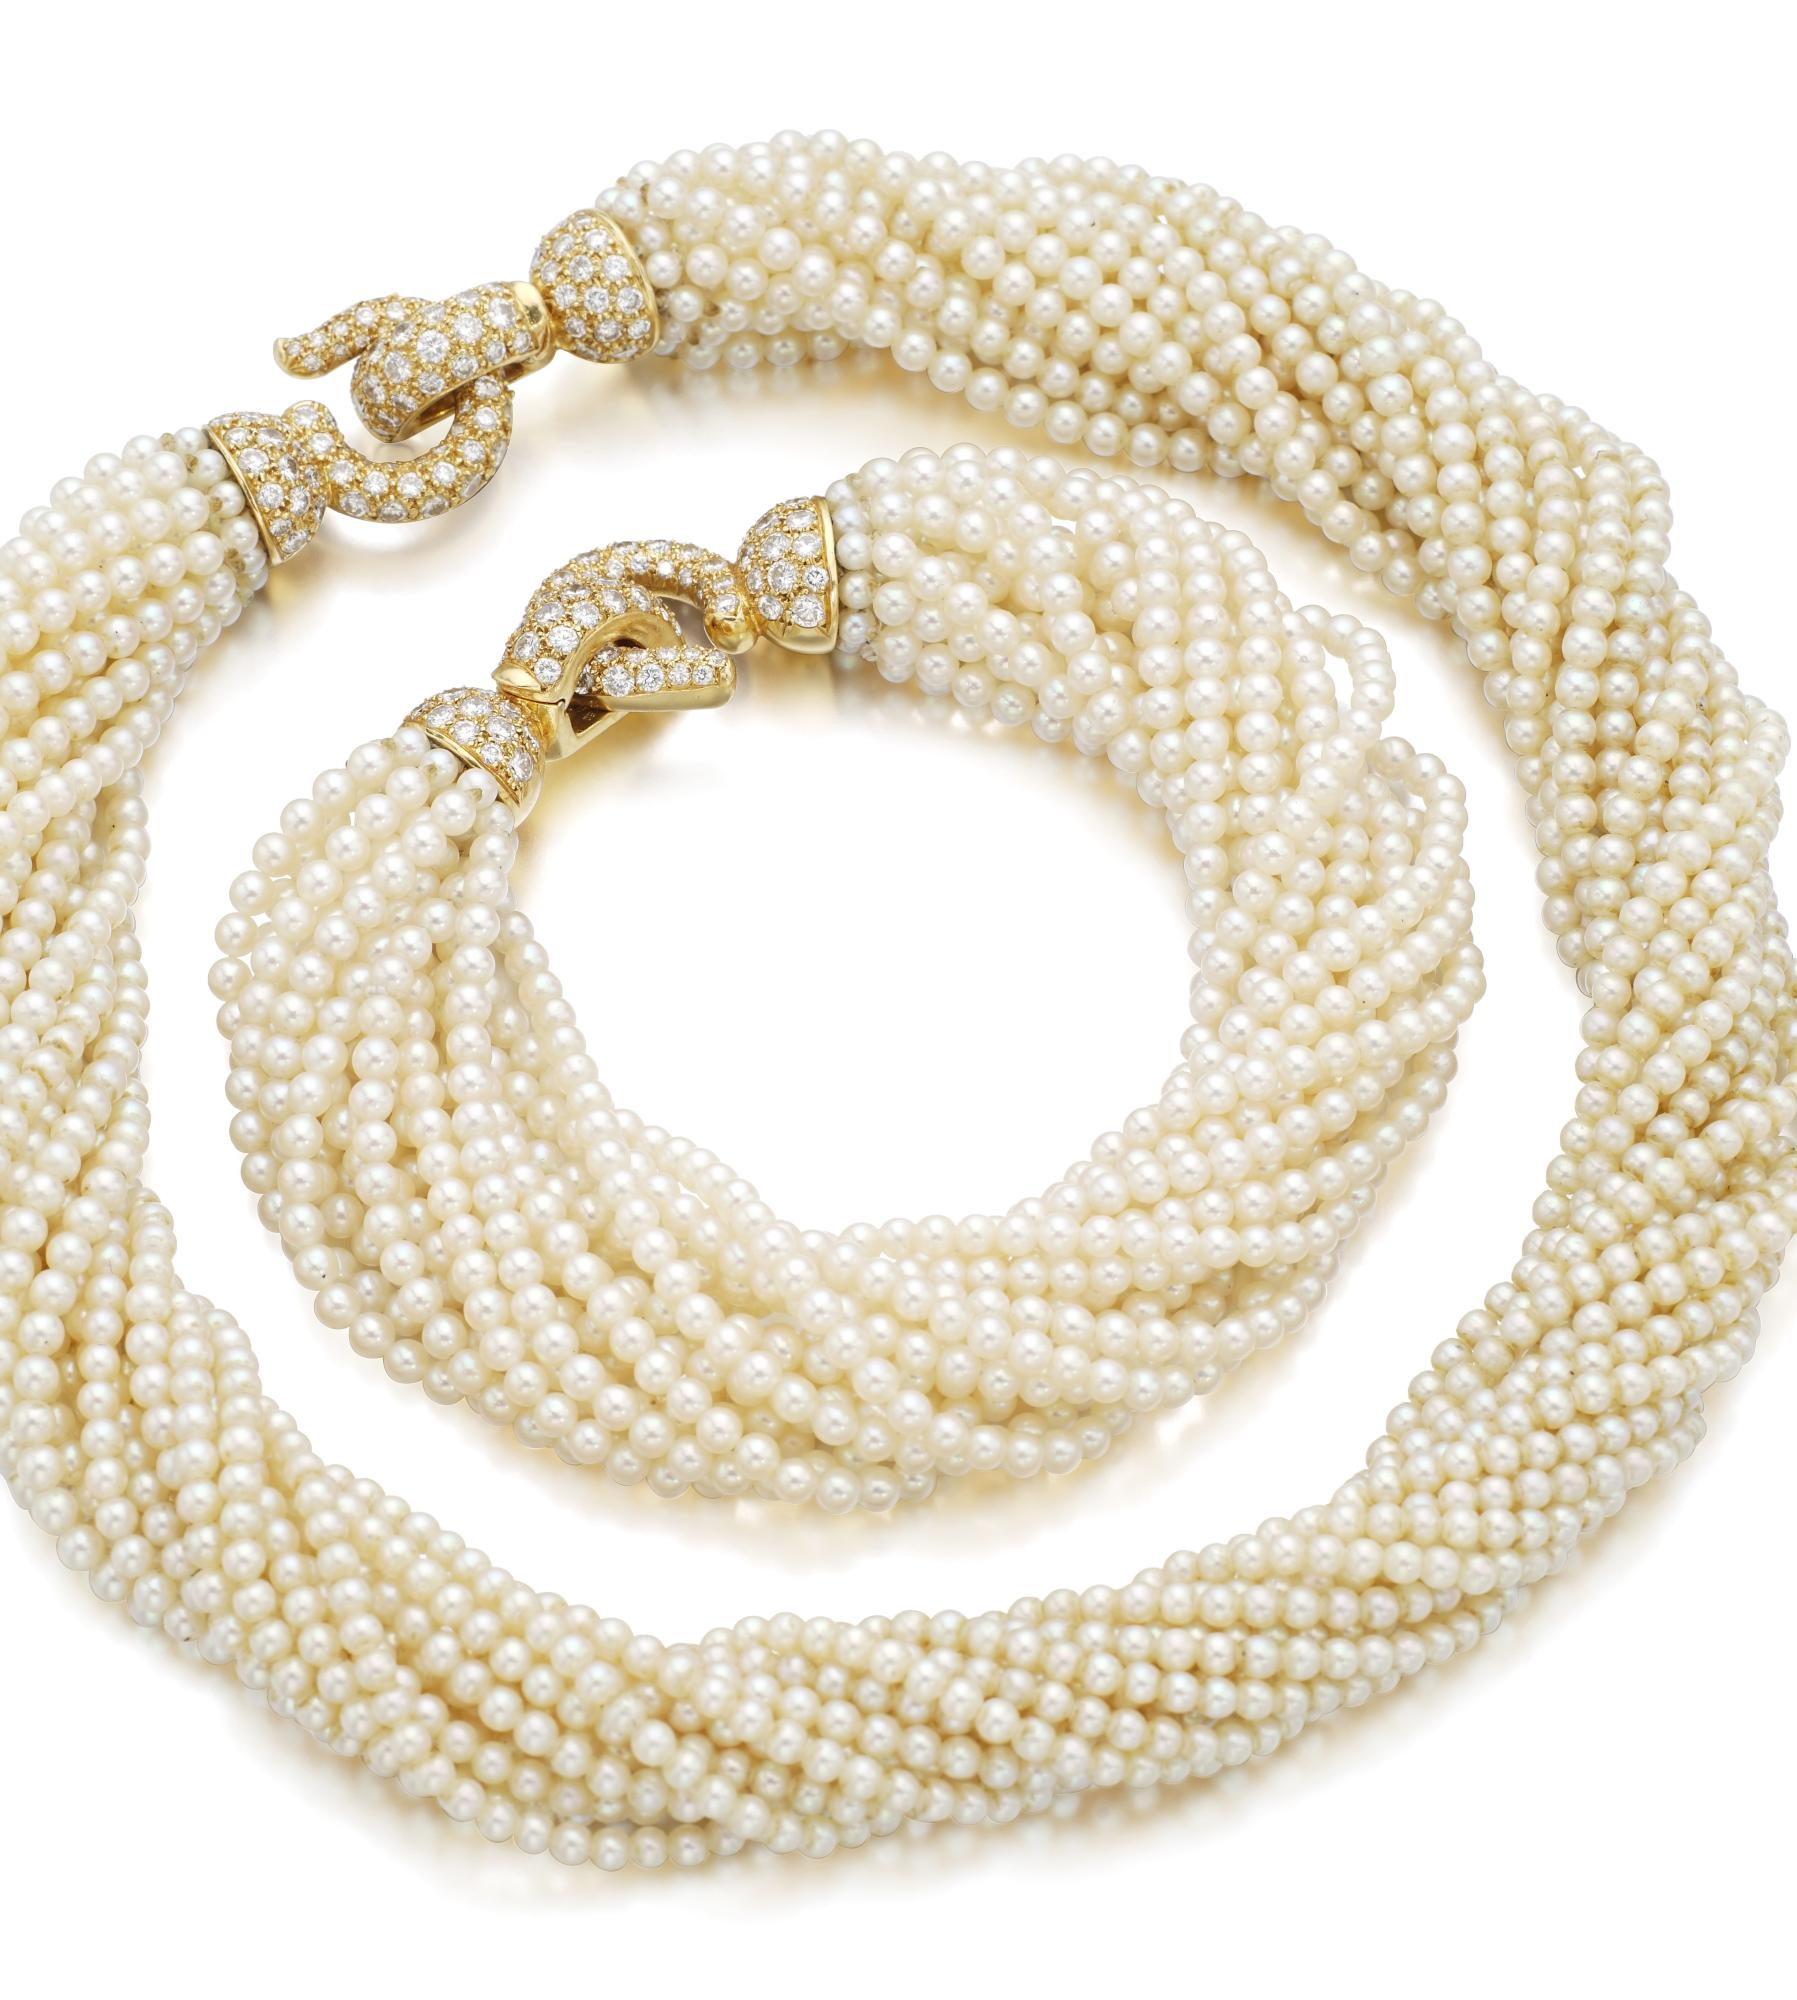 SEED PEARL AND DIAMOND DEMI-PARURE | CARTIER